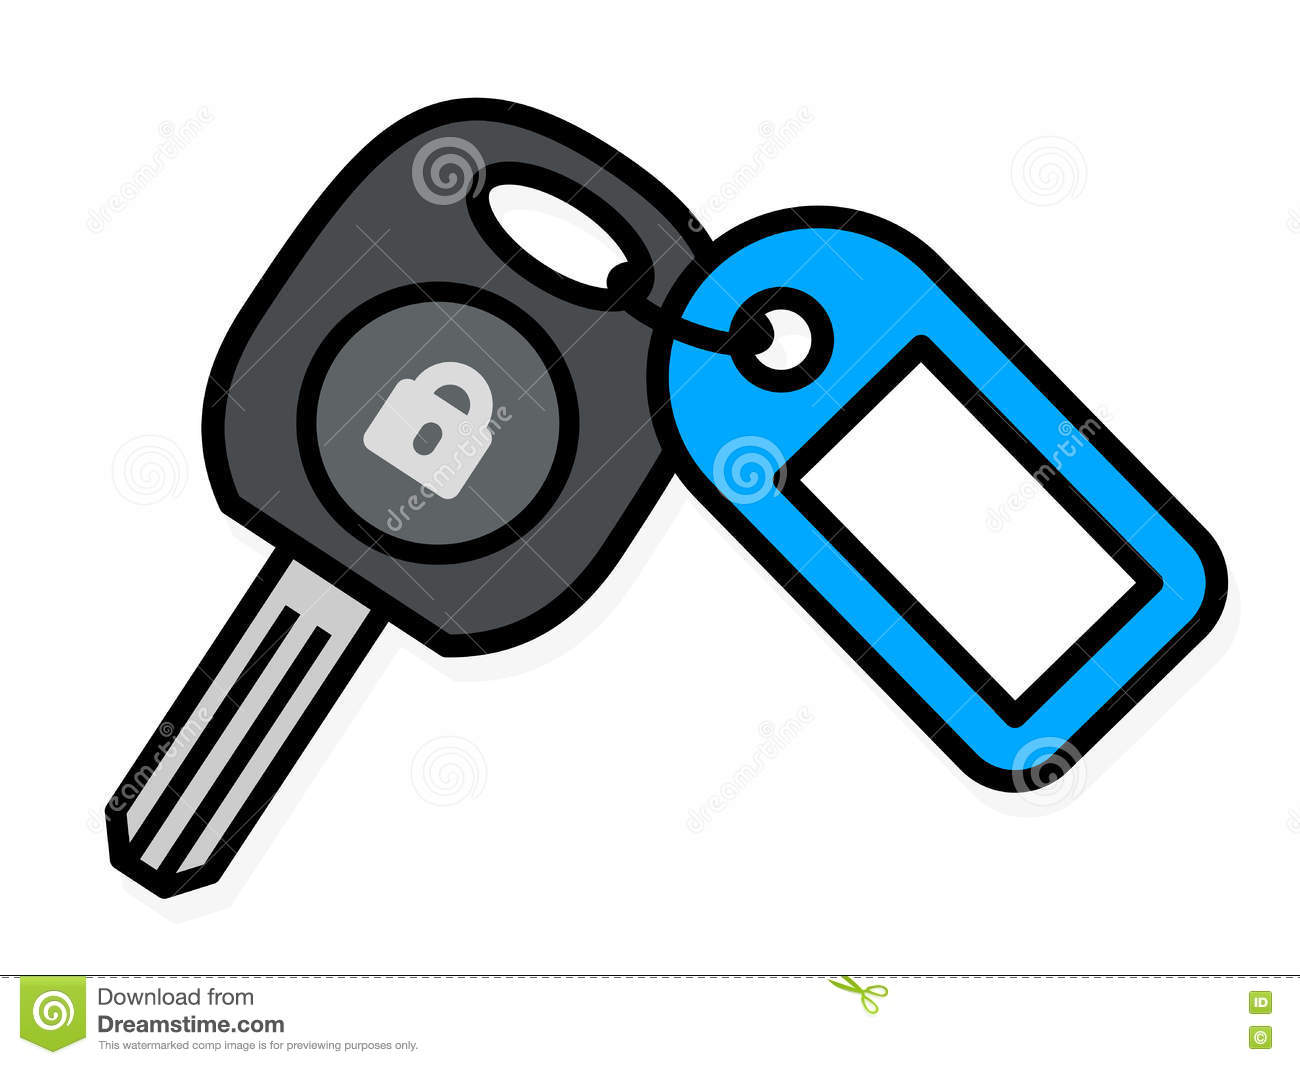 how to make a copy of a car key